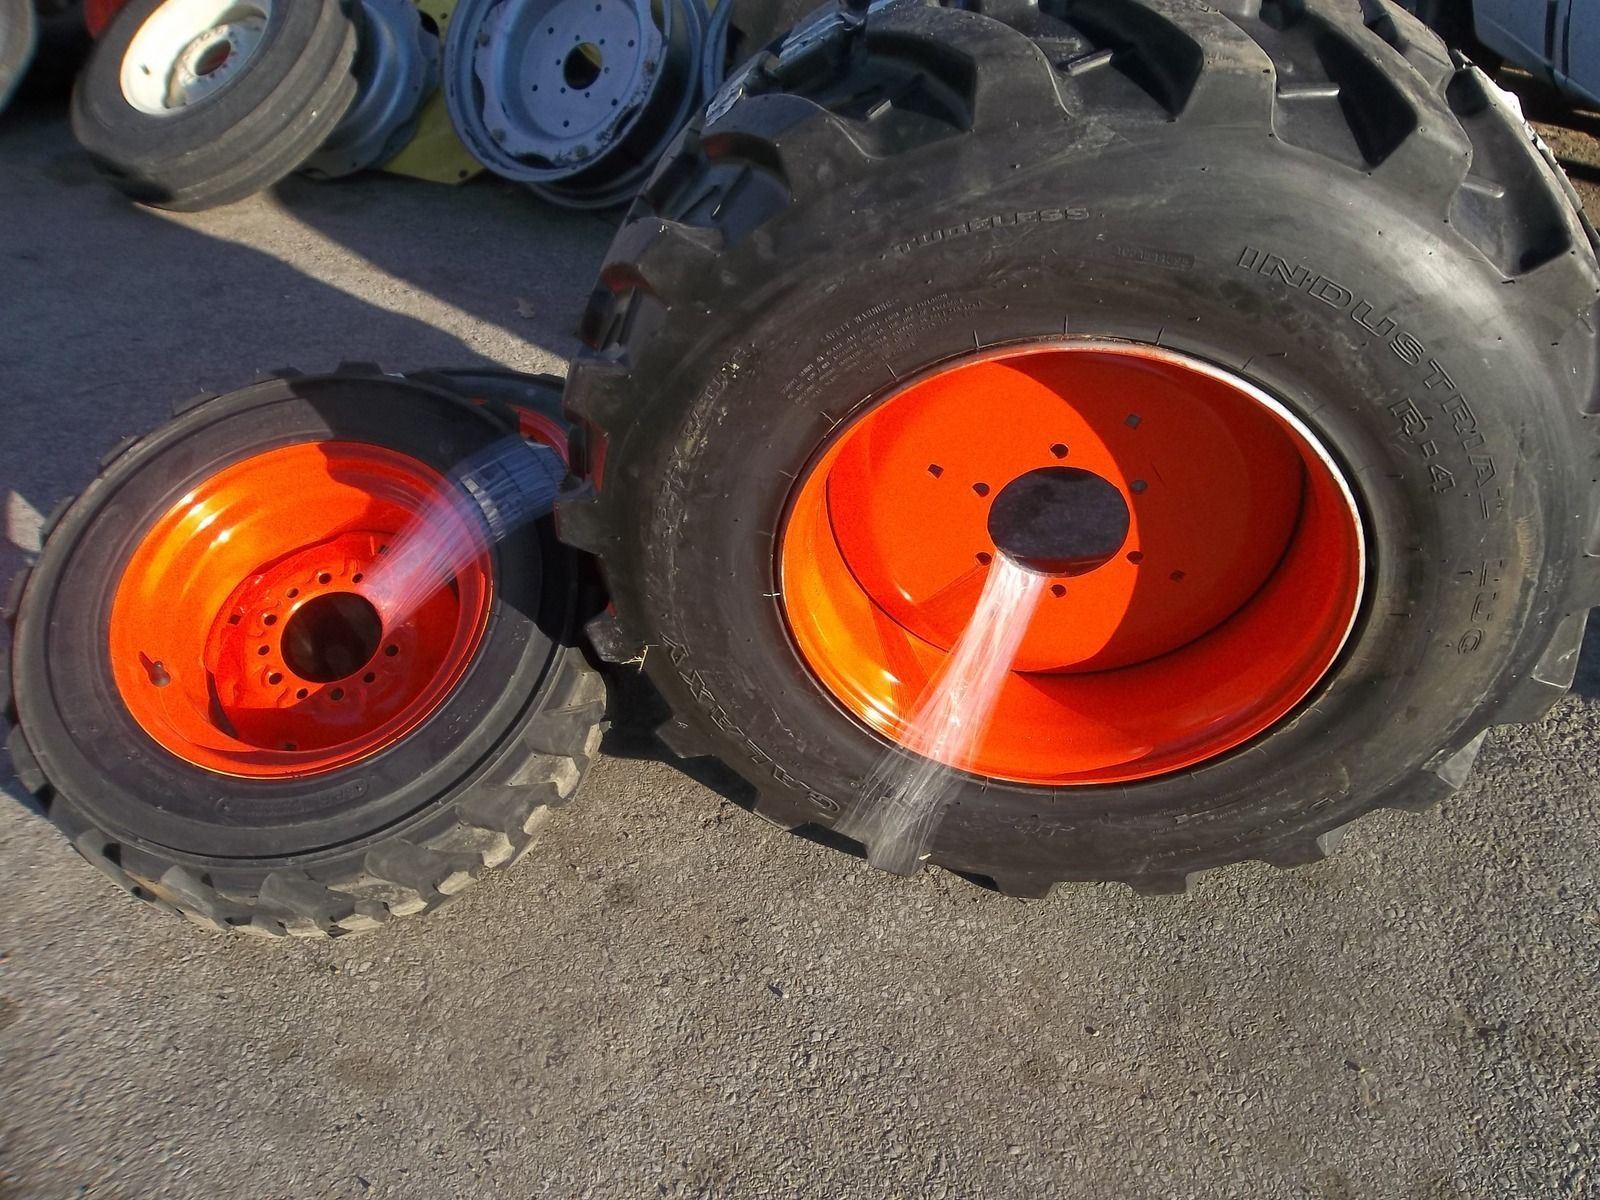 TWO Kubota L3400DT 15X19 5 R4 and TWO 27 8 50x15 R4 Tractor Tires on